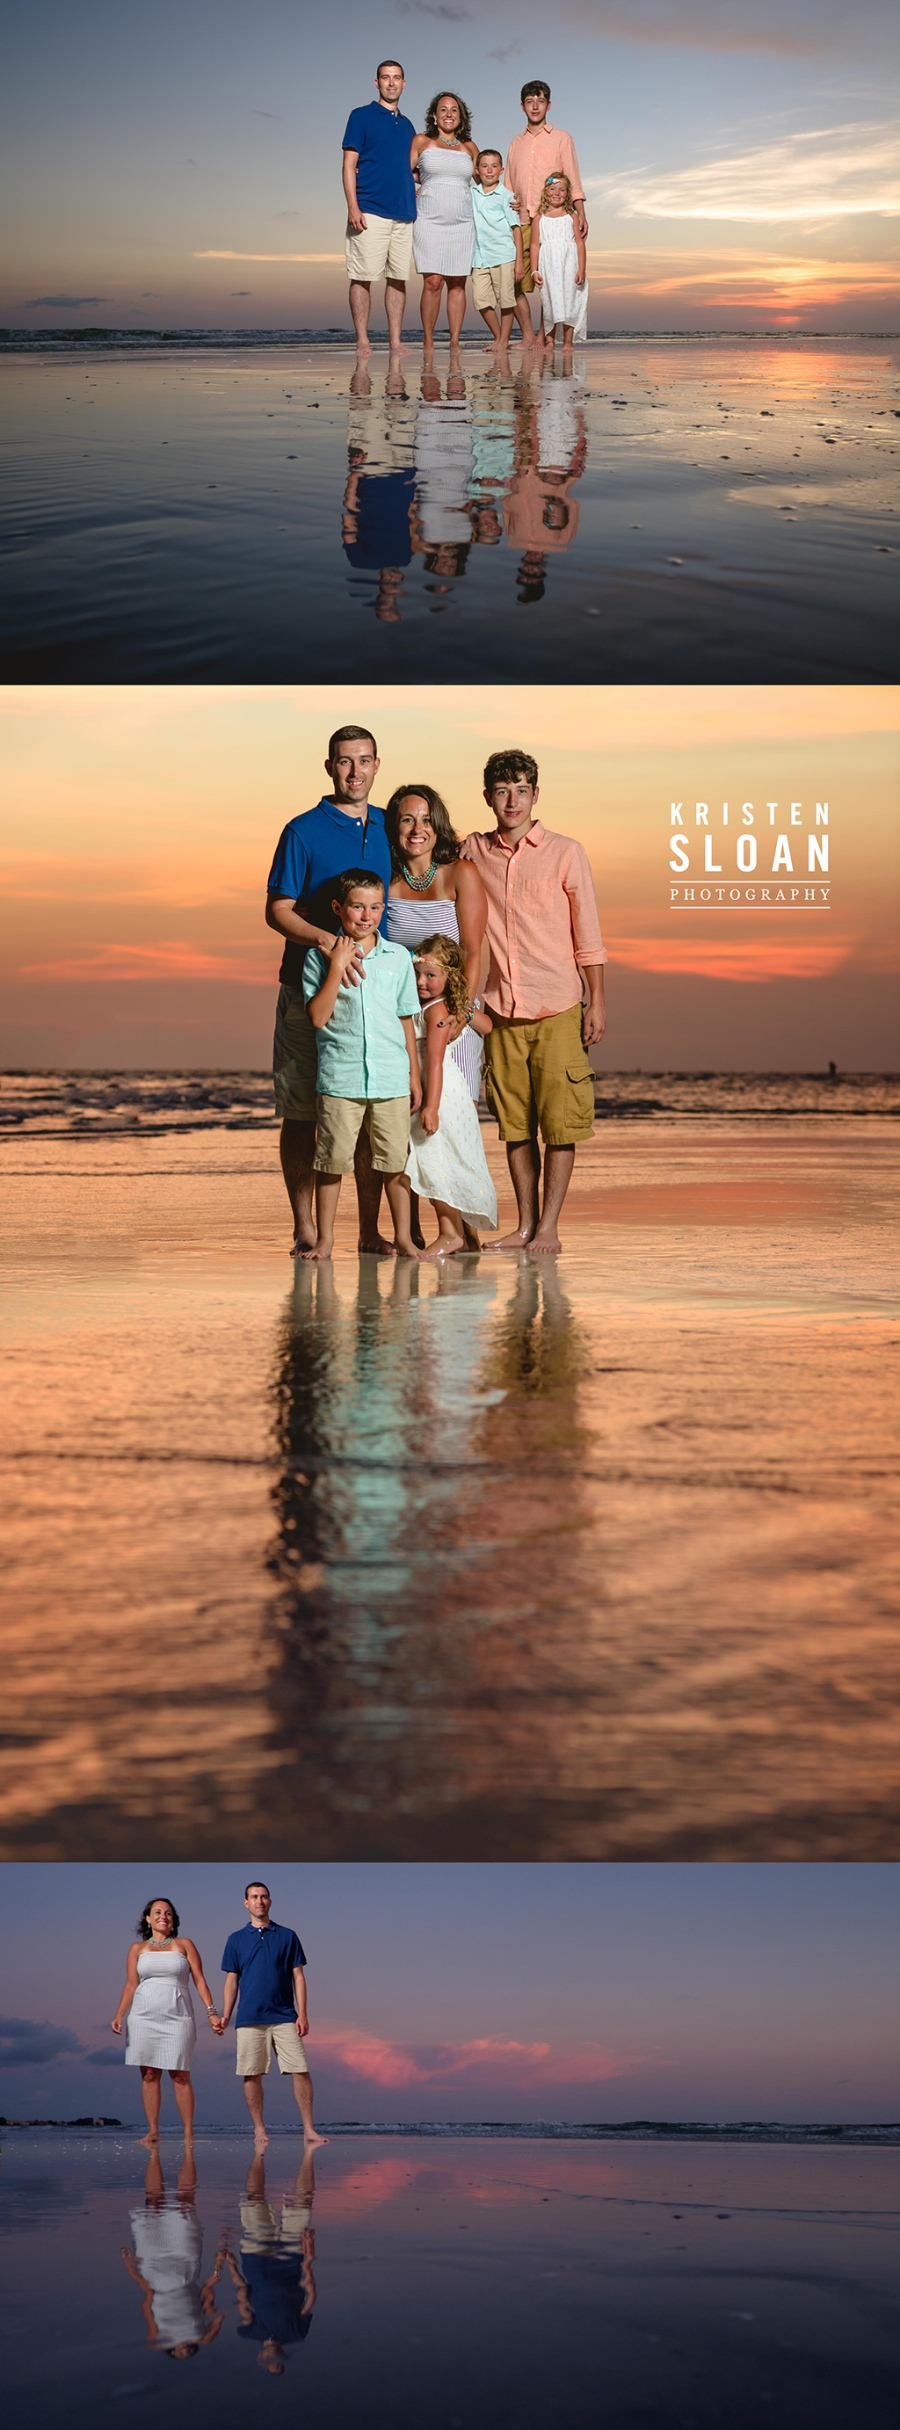 St Pete Beach Wedding Portrait Photographer |Sunset Vistas Family Beach Portraits | Sunset Vistas Treasure Island FL |Treasure Island Wedding Portrait Photographer Kristen Sloan